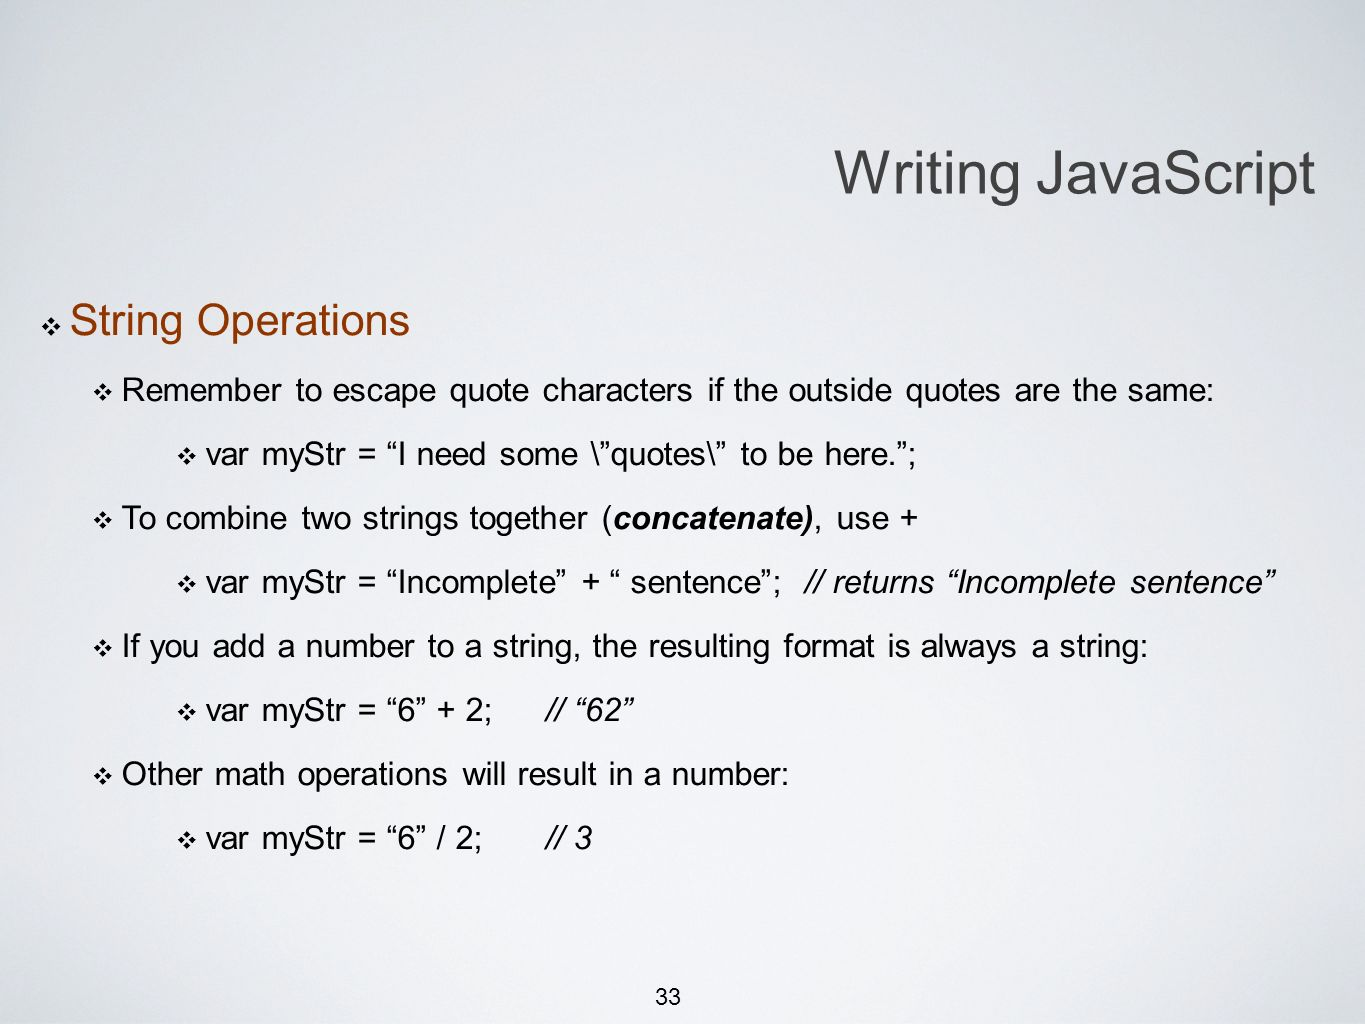 33 Writing JavaScript String Operations Remember to escape quote characters if the outside quotes are the same: var myStr = I need some \quotes\ to be here.; To combine two strings together (concatenate), use + var myStr = Incomplete + sentence; // returns Incomplete sentence If you add a number to a string, the resulting format is always a string: var myStr = 6 + 2;// 62 Other math operations will result in a number: var myStr = 6 / 2;// 3